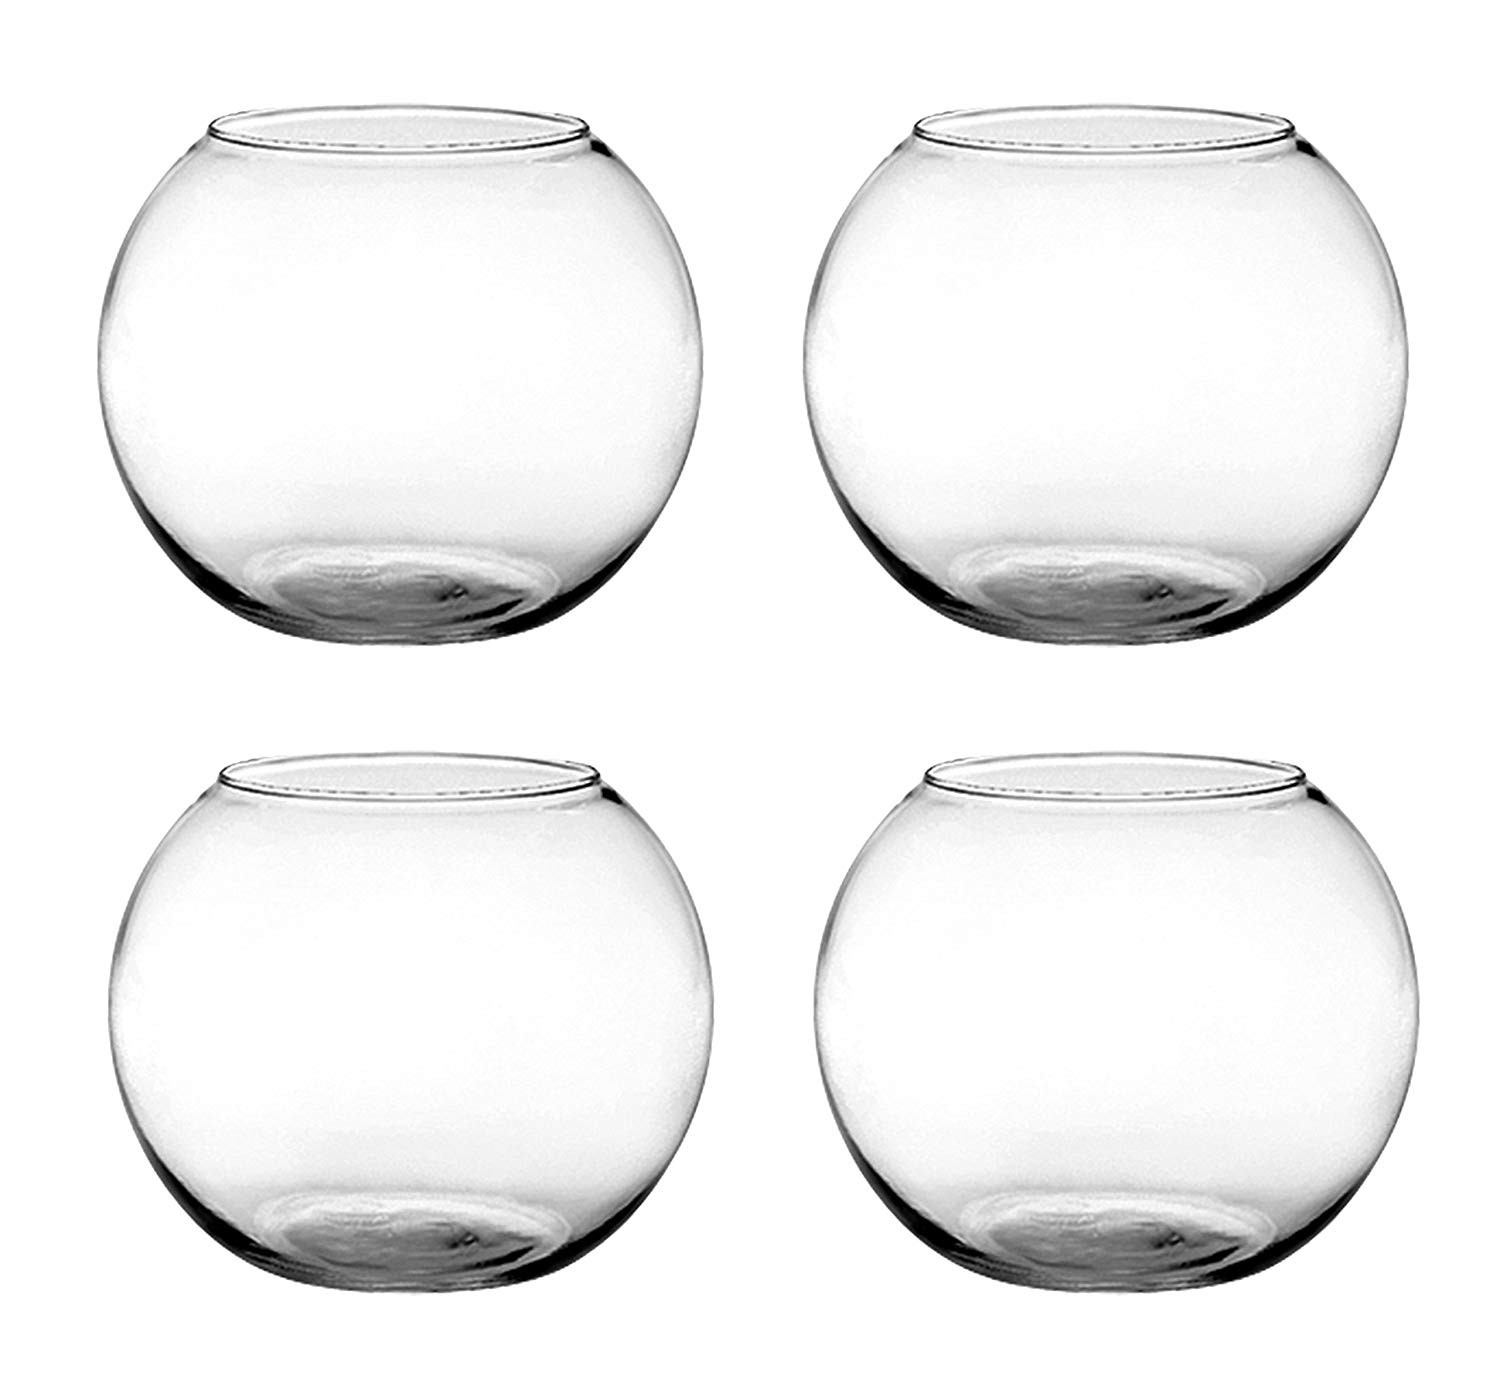 16 Fabulous Cheap 9 Inch Cylinder Vase 2021 free download cheap 9 inch cylinder vase of amazon com set of 4 syndicate sales 6 inches clear rose bowl throughout amazon com set of 4 syndicate sales 6 inches clear rose bowl bundled by maven gifts gard